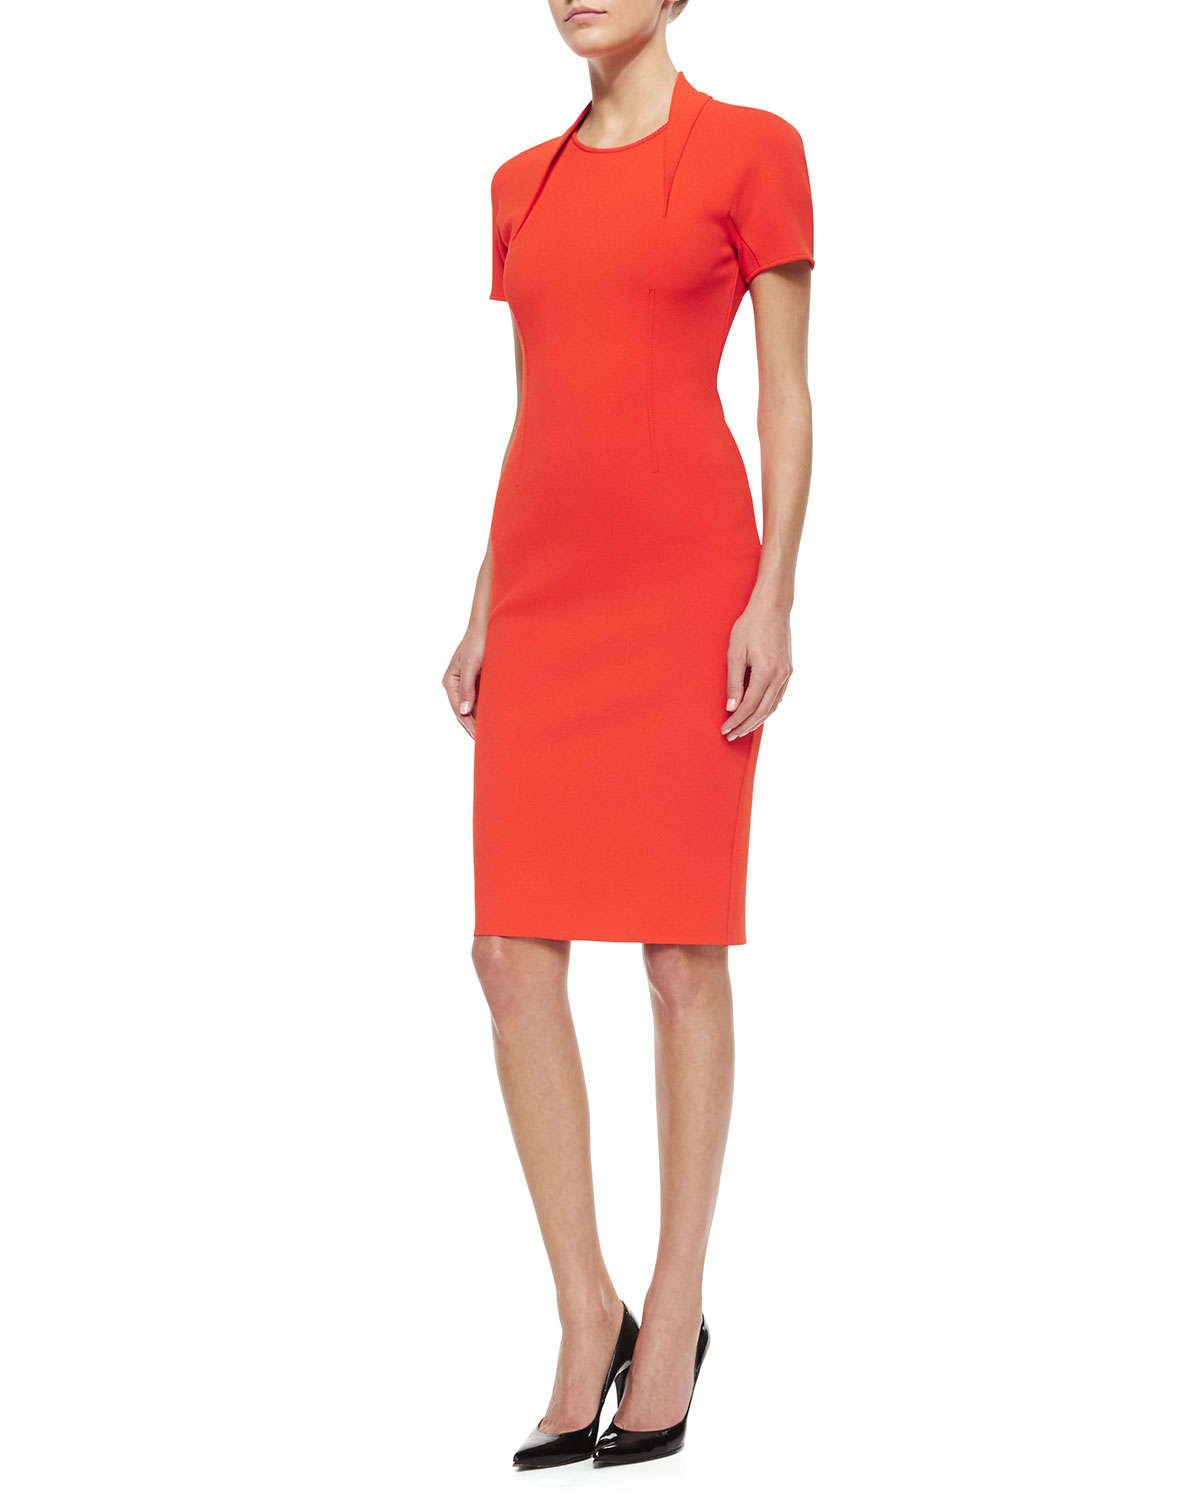 Red dress neiman marcus john